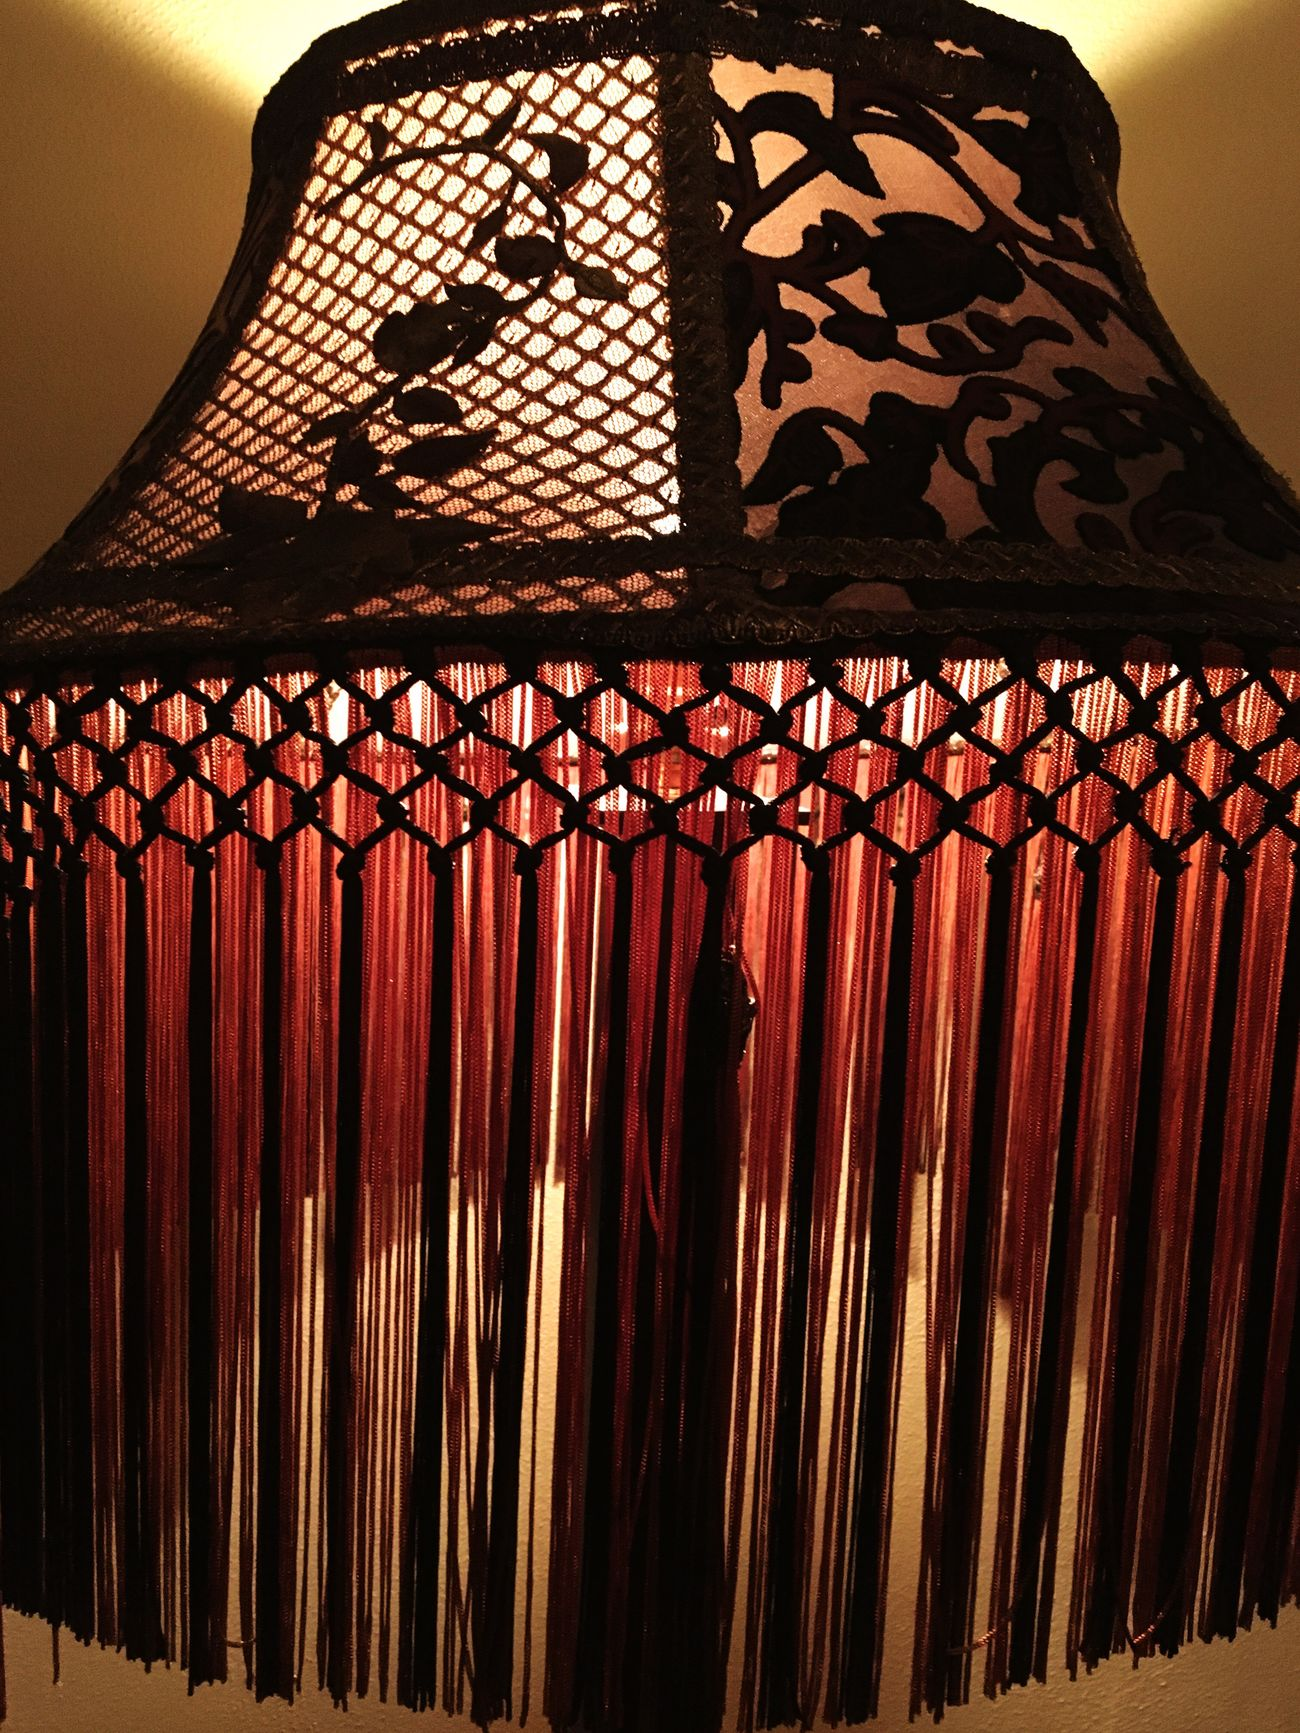 Beautiful Victorian Lampshade Fringe Victorian Charm Victorian Style Victorian Lighting Lampshade Warm Lighting Light And Shadow Warmth Pattern Mcmenamins Art Photography Abstract Photography Warm Colors Columbia River Gorge Troutdale, Oregon Wood Village No People